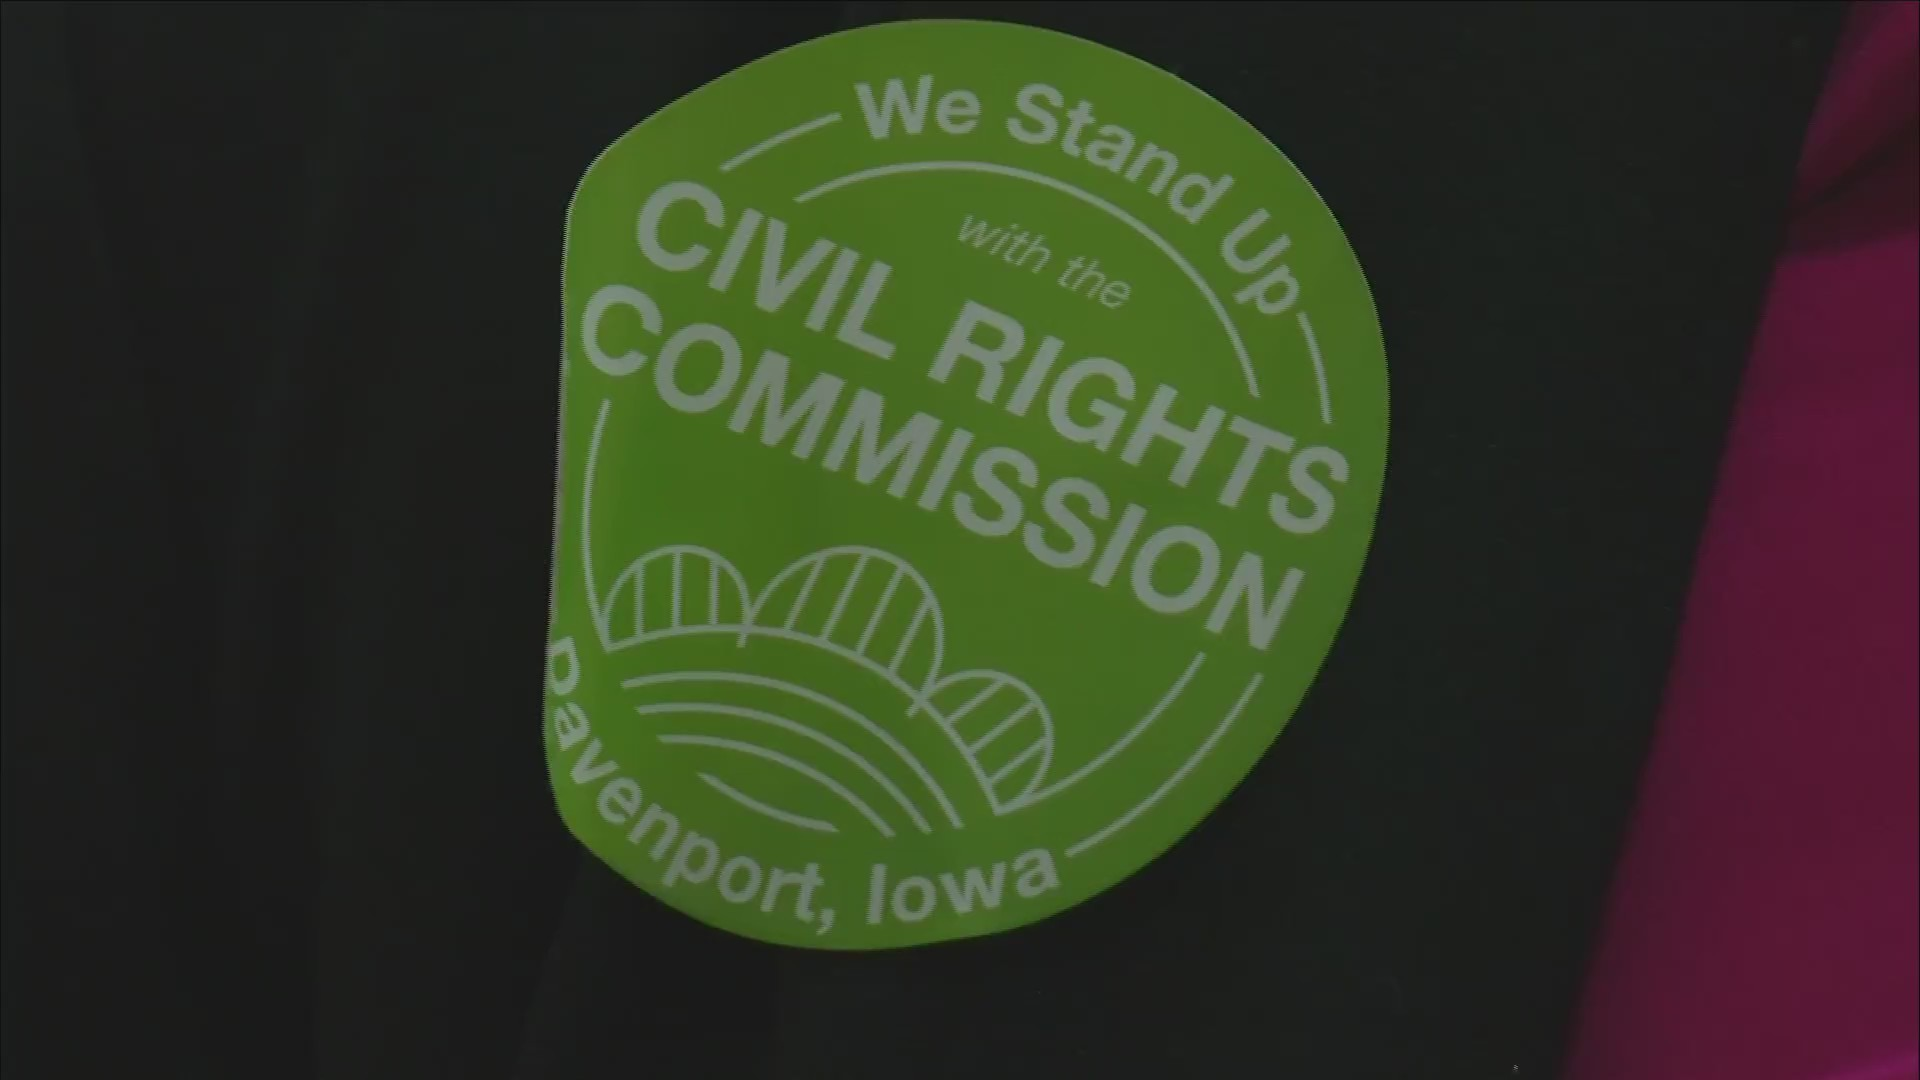 Some Davenport residents fear Civil Rights Commission is 'under siege' and 'demolished'